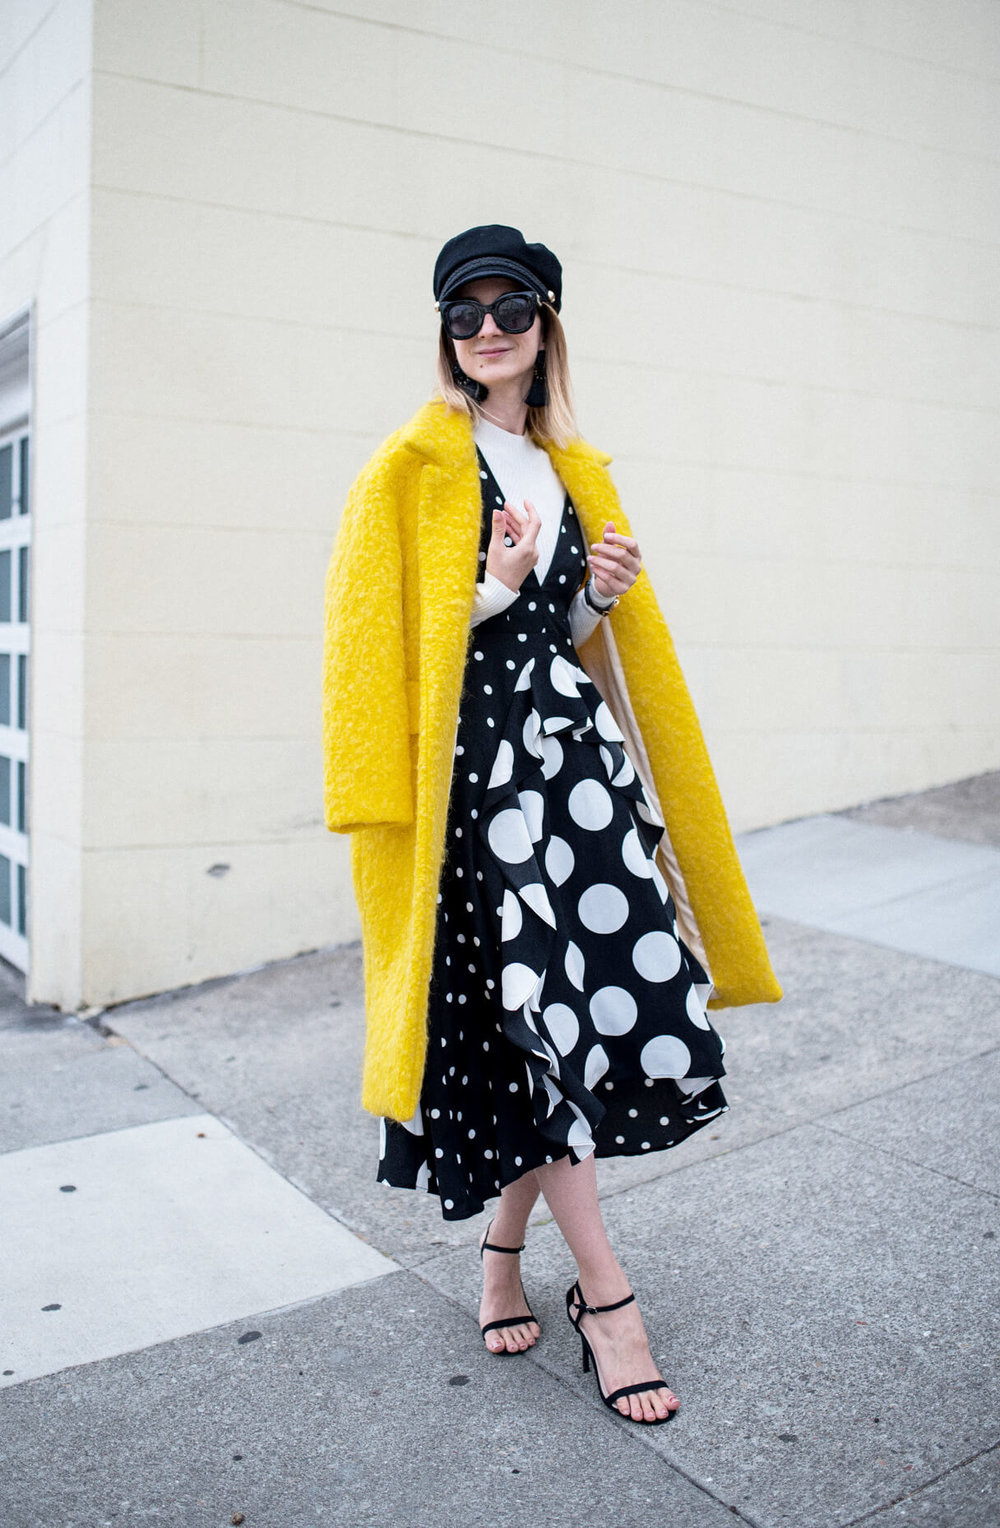 Topshop-Petite-Spot-Pinafore-Dress-Yello-WoolCoat.jpg